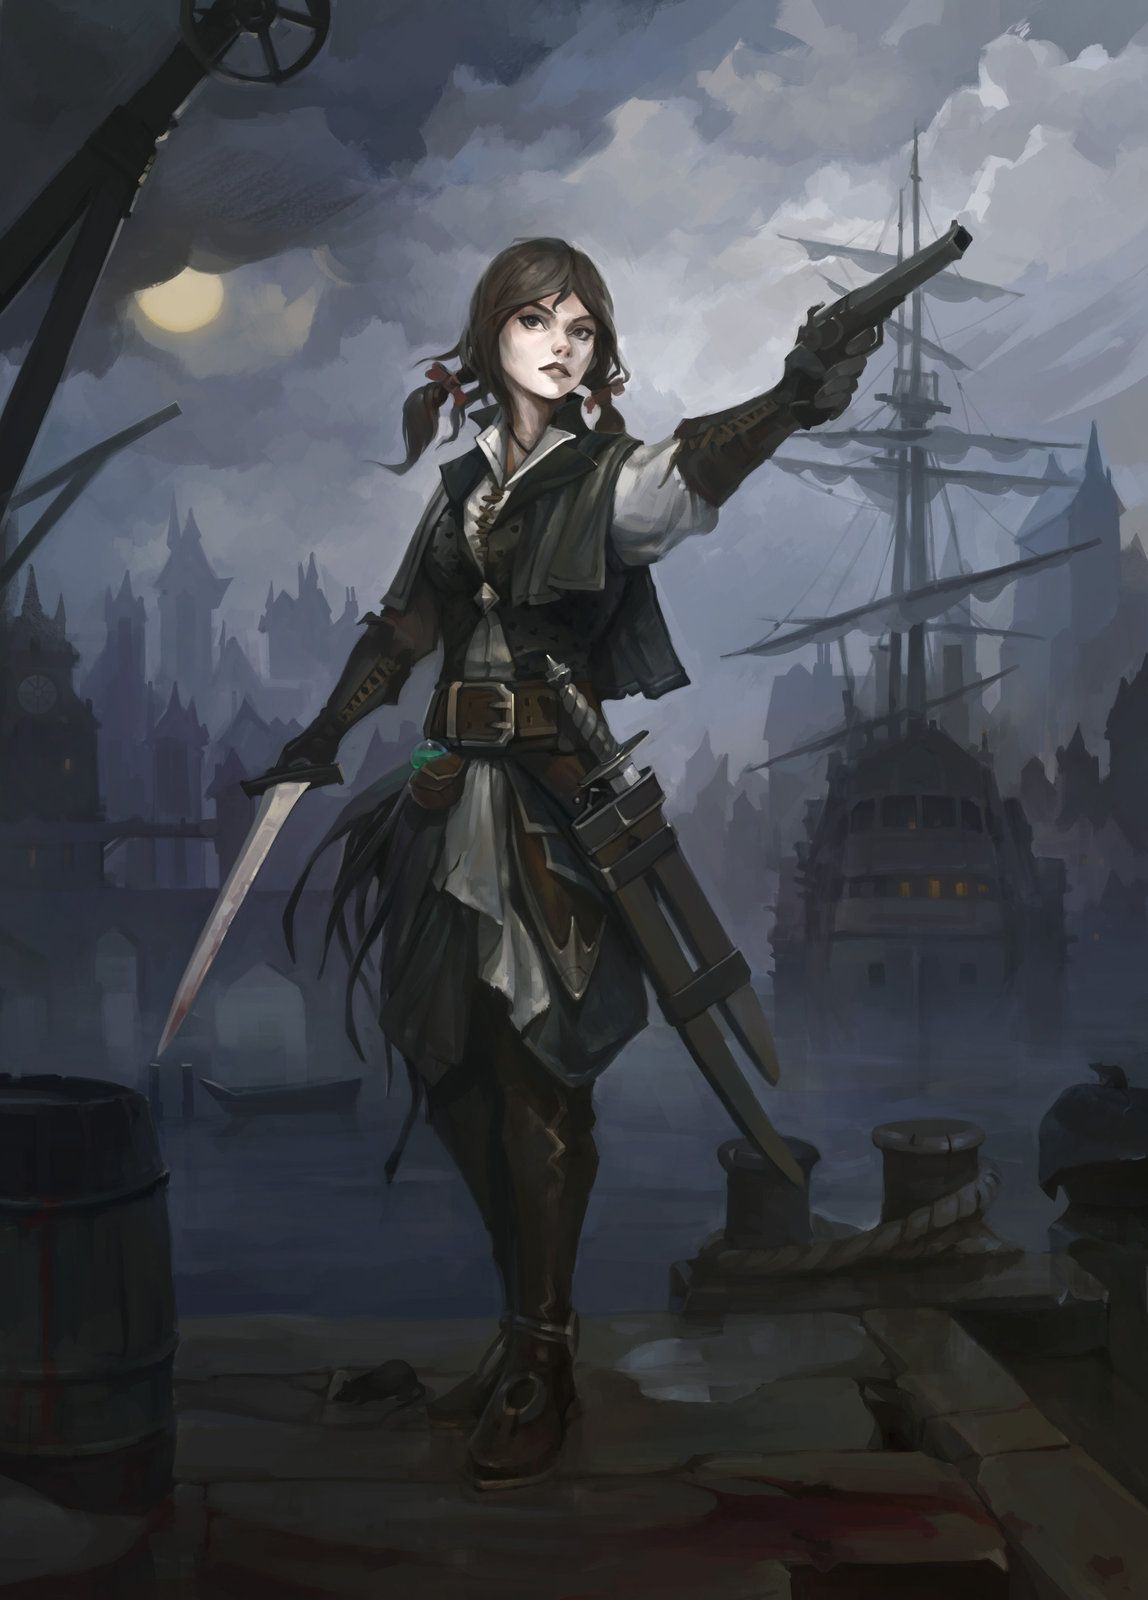 Pin By Leah Ash On Art Pirate Woman Character Art Character